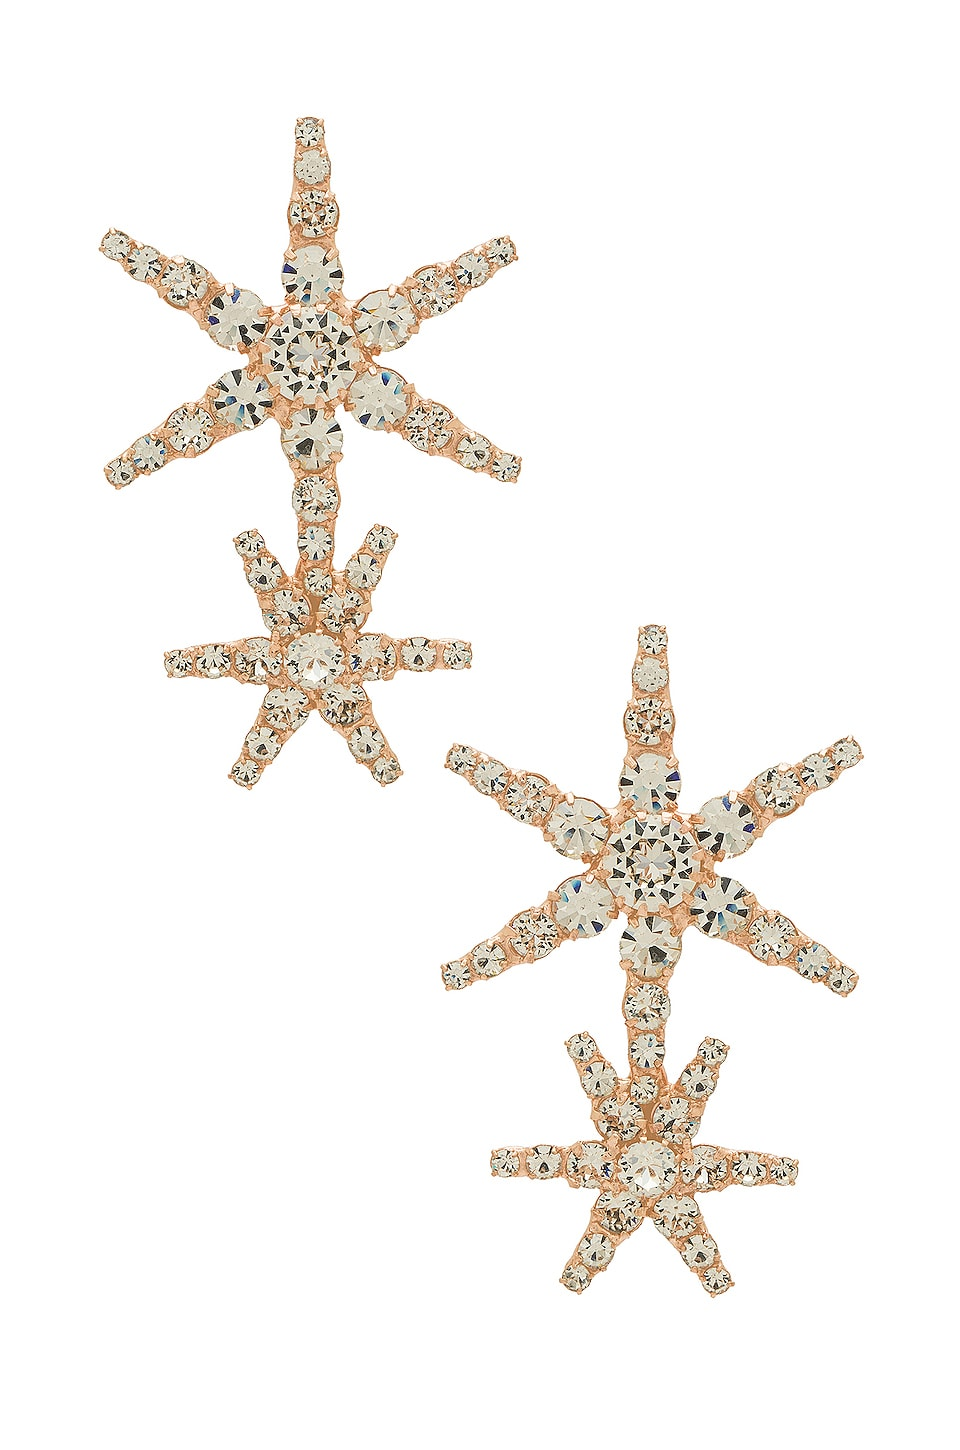 Jennifer Behr Estrella Earrings in Rose Gold